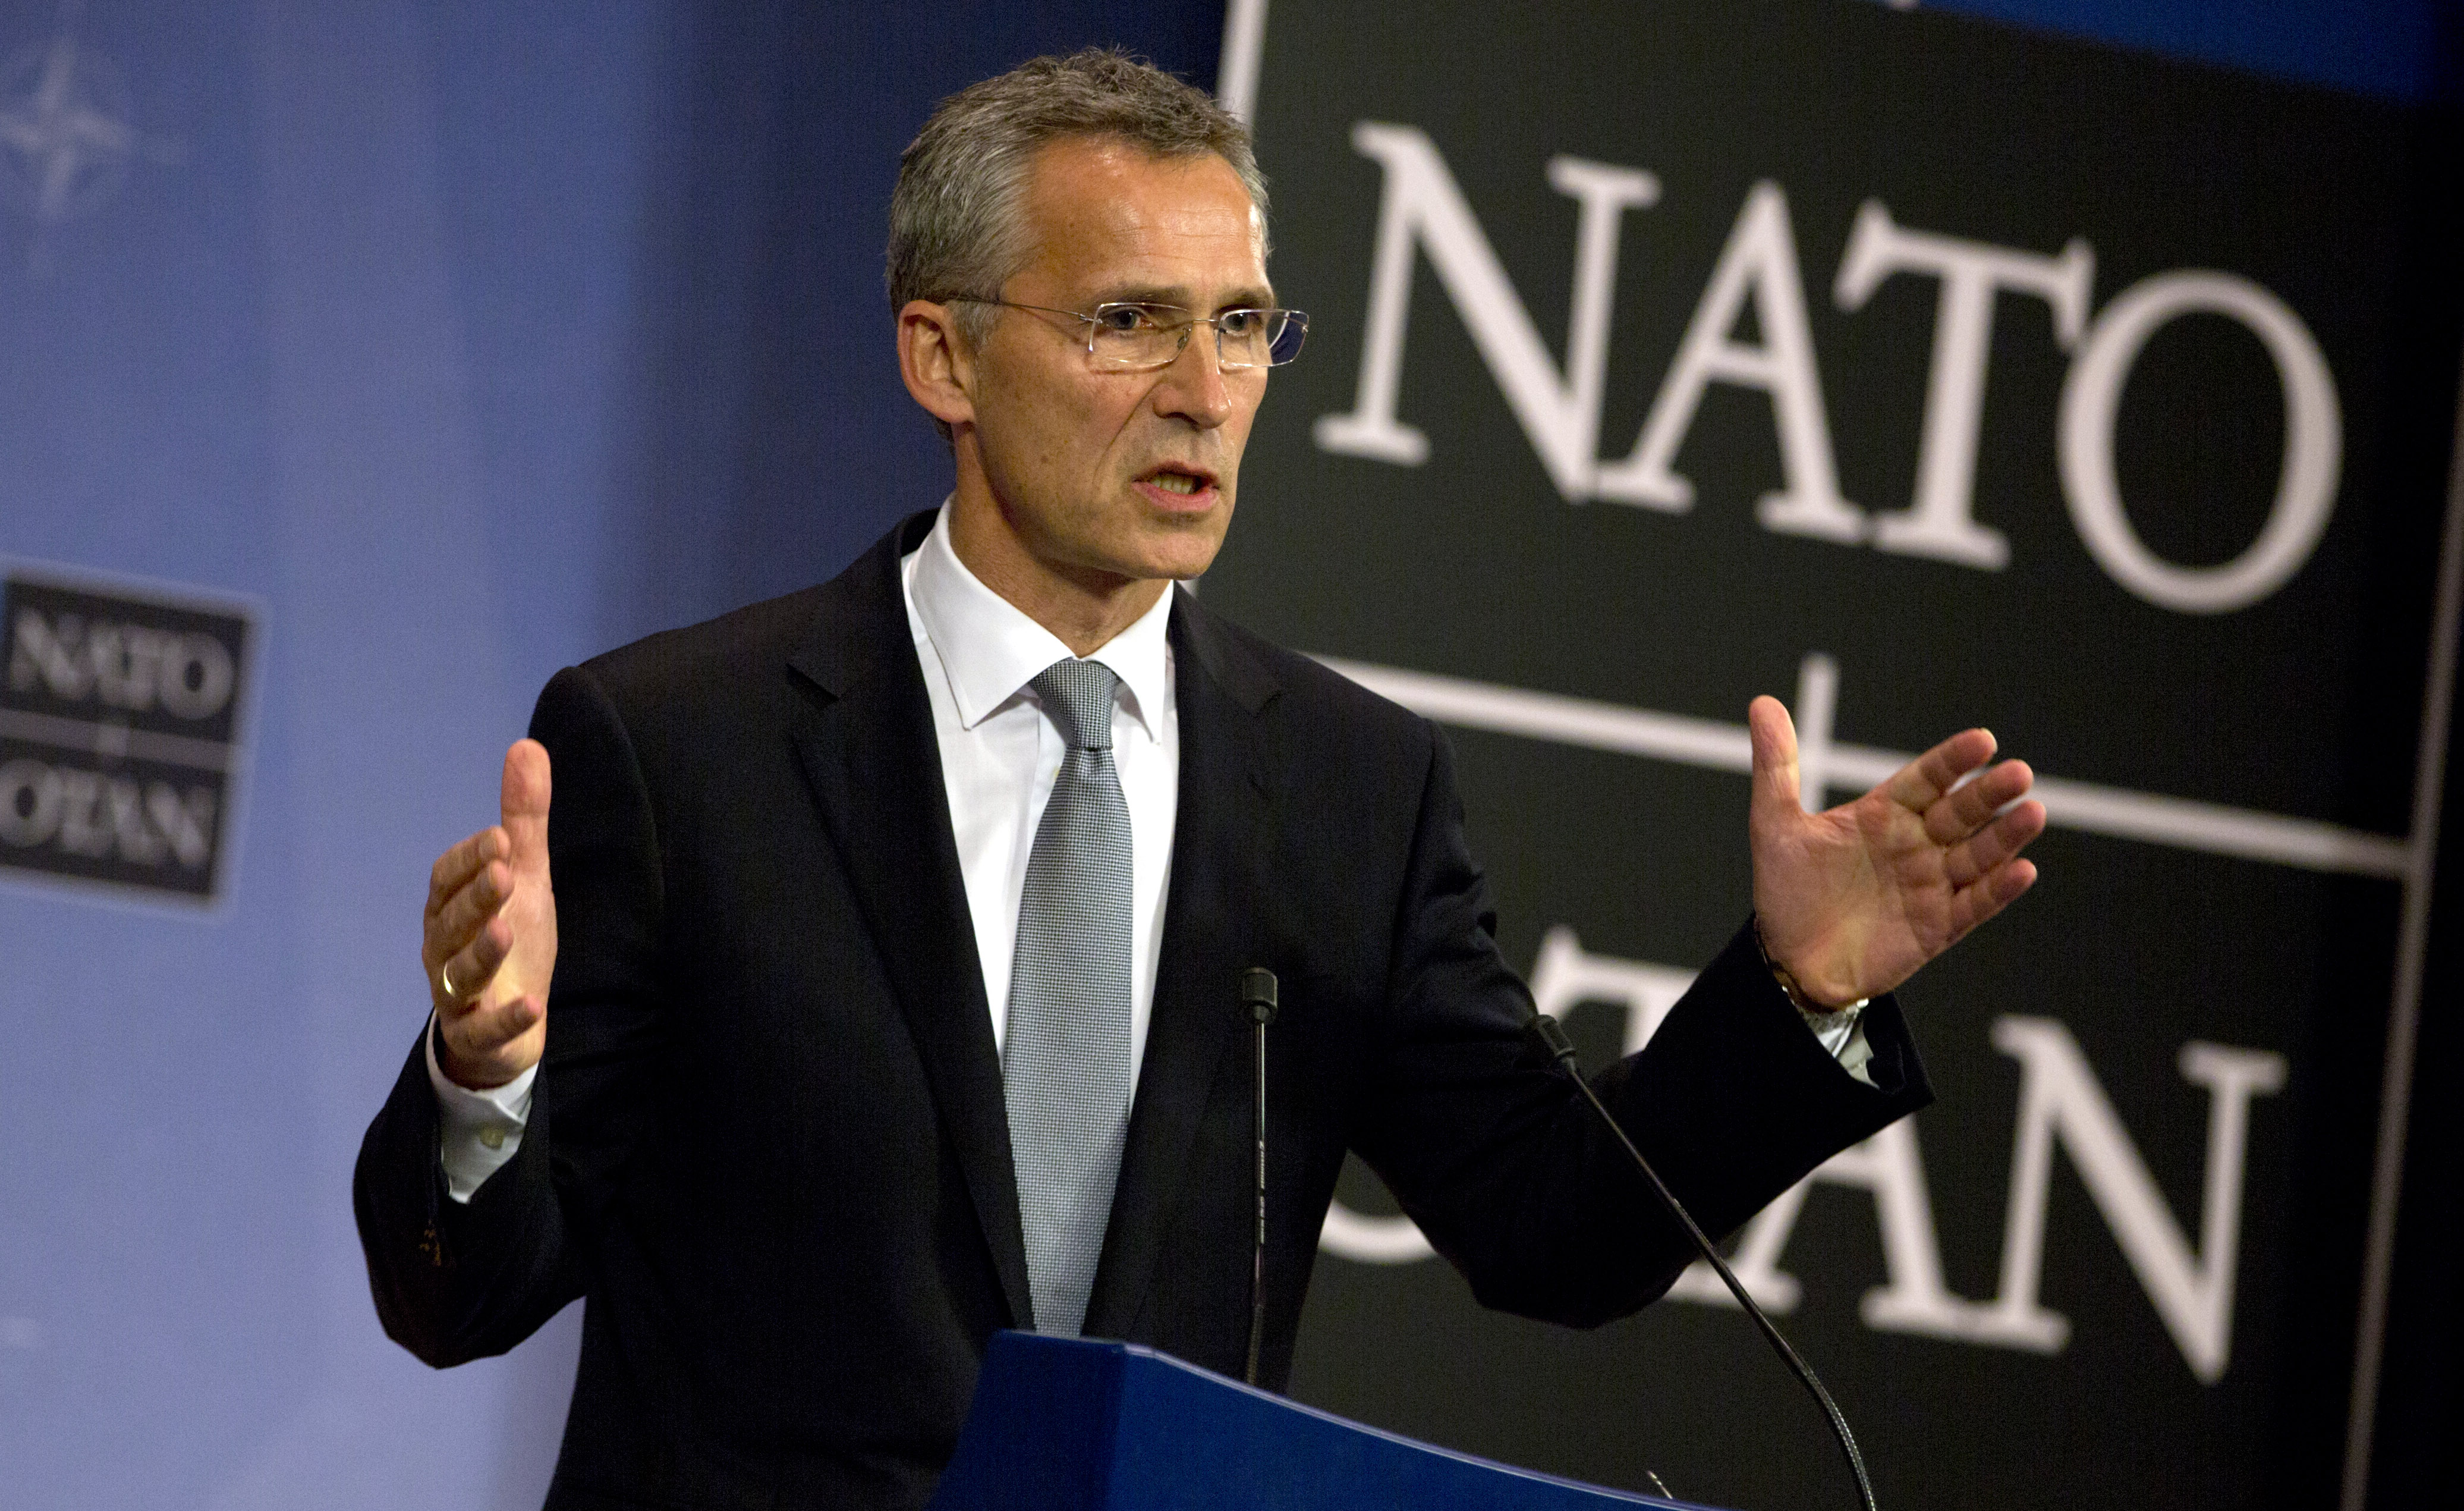 NATO Secretary General Jens Stoltenberg speaks during a news conference at NATO headquarters in Brussels, Oct. 8, 2015.